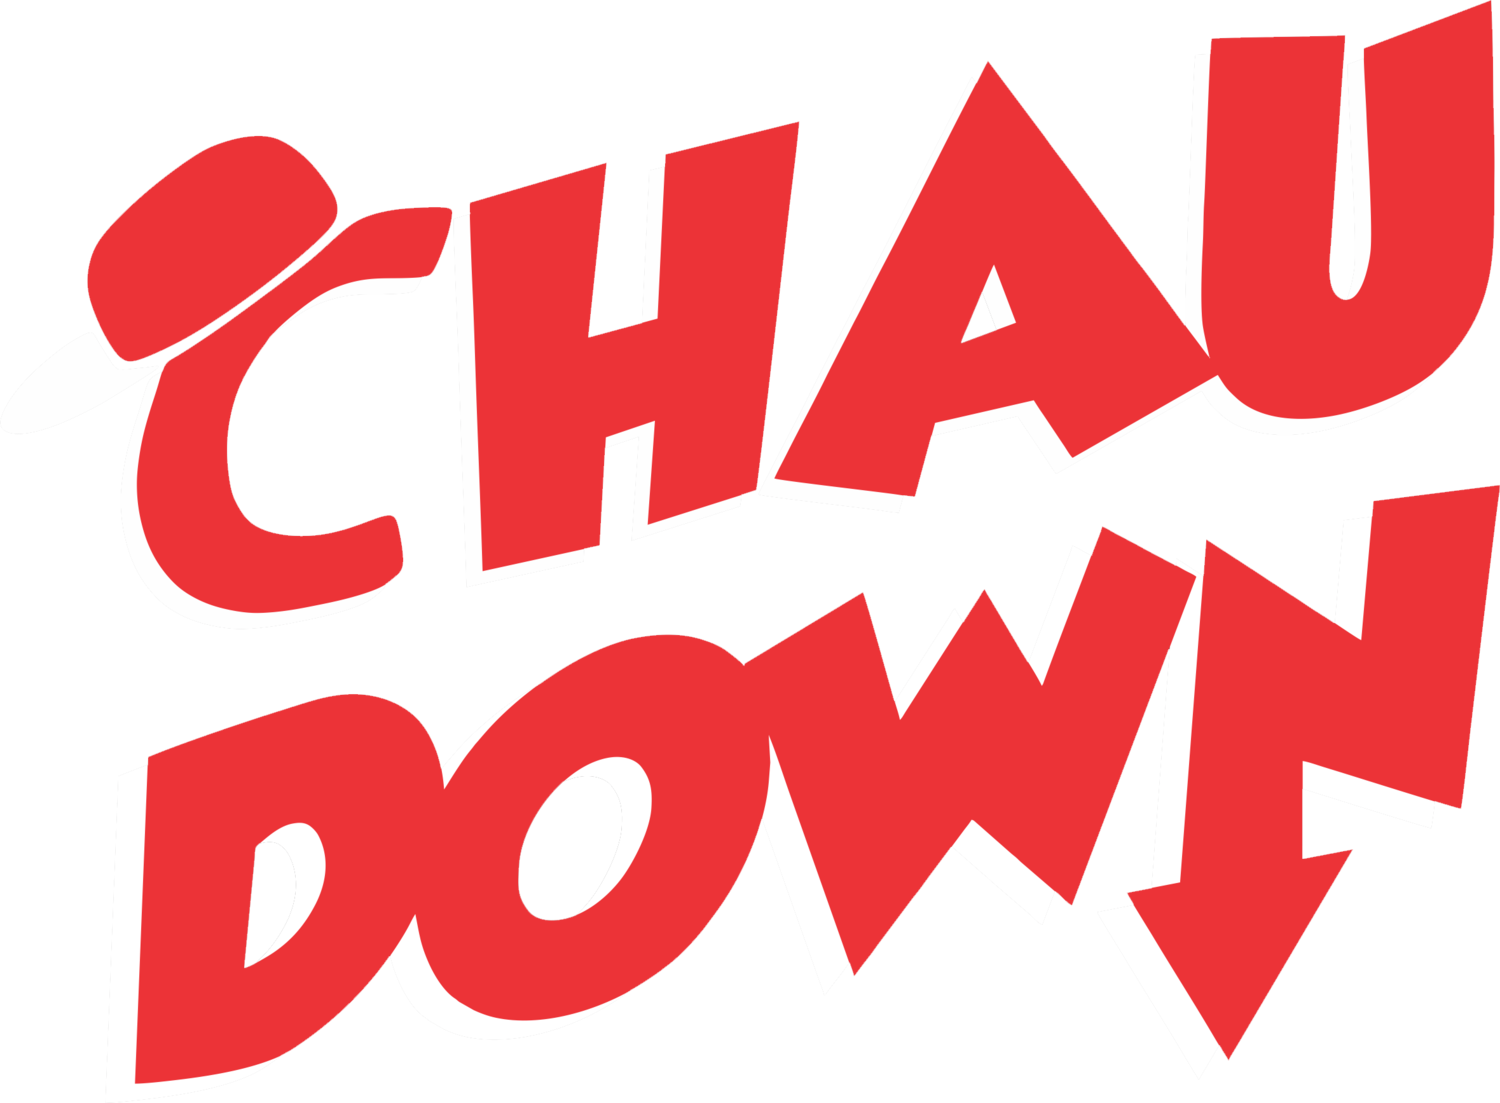 Chau Down Cafe